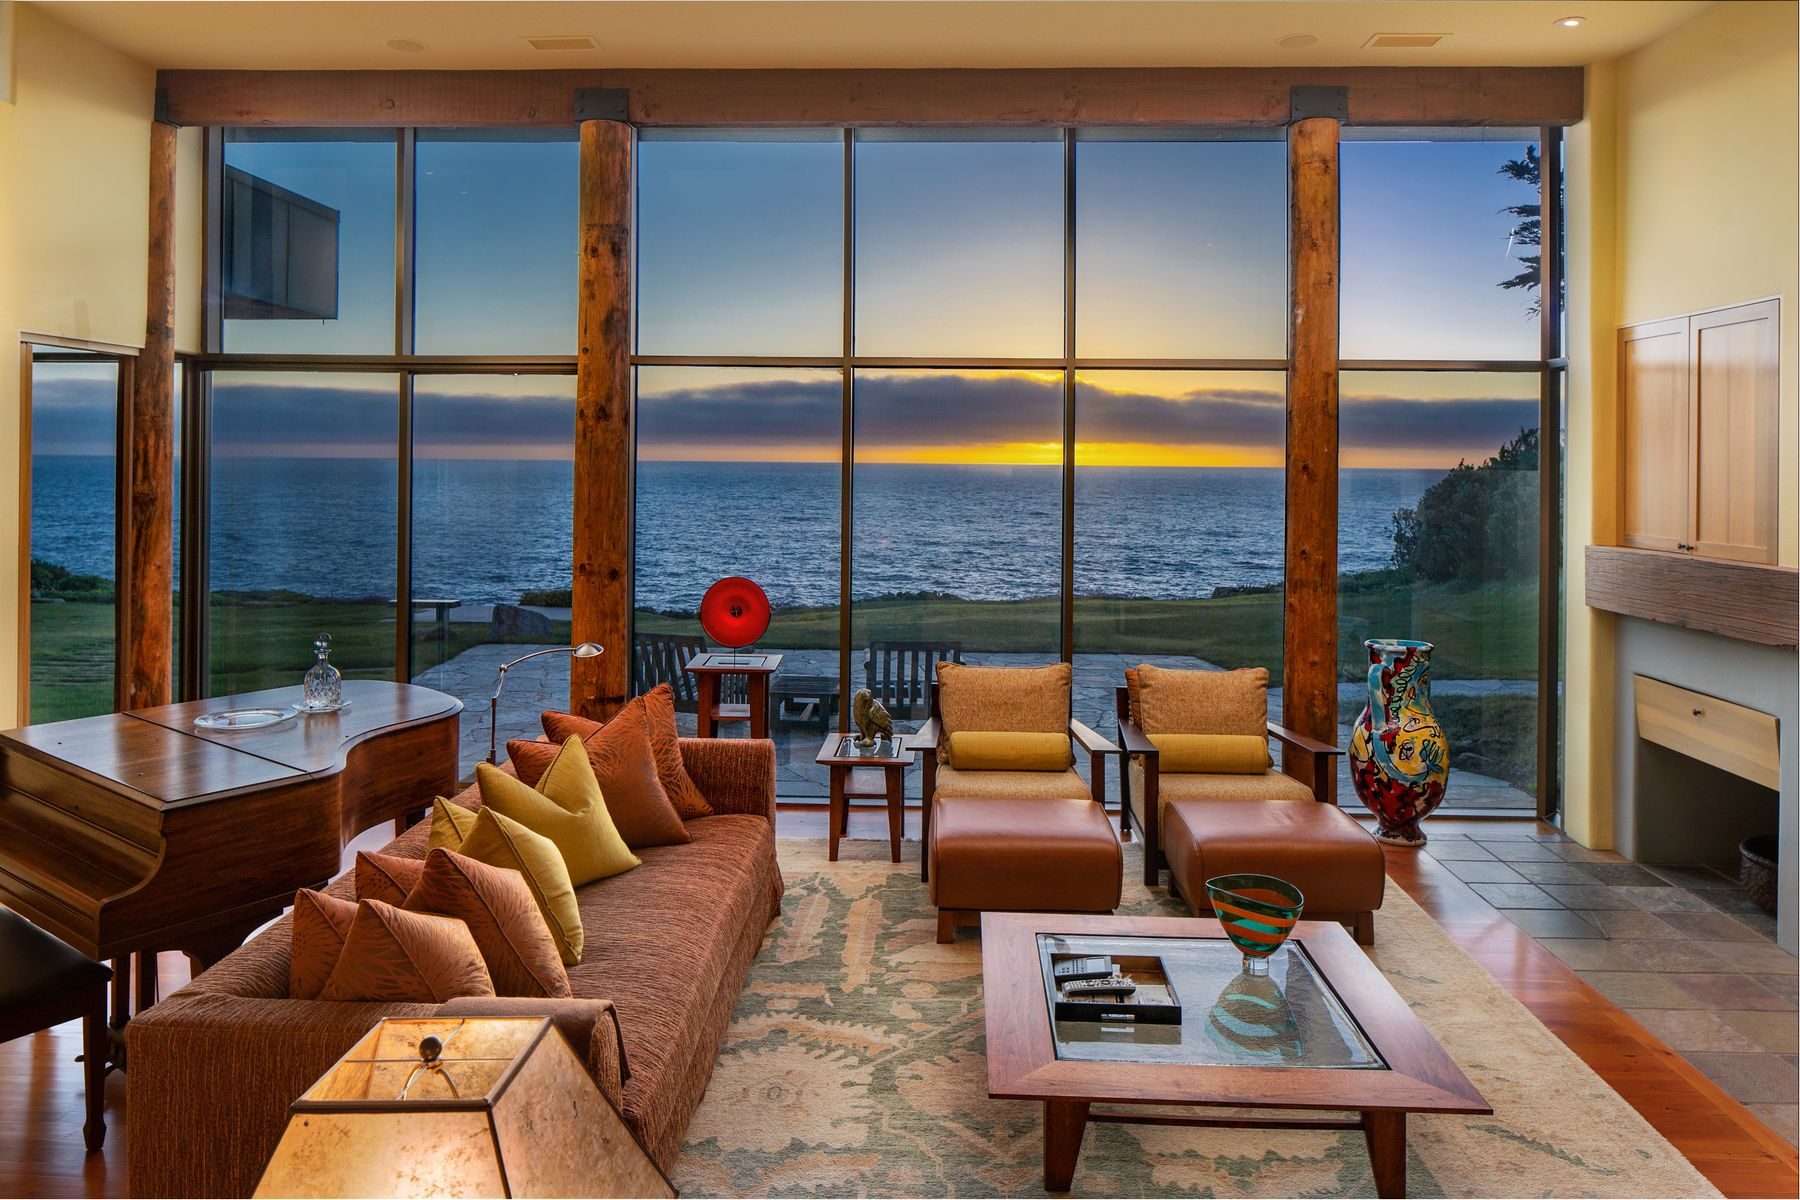 Single Family Homes for Sale at Modern Oceanfront Hideaway 36648 Highway 1 Carmel Highlands, California 93940 United States